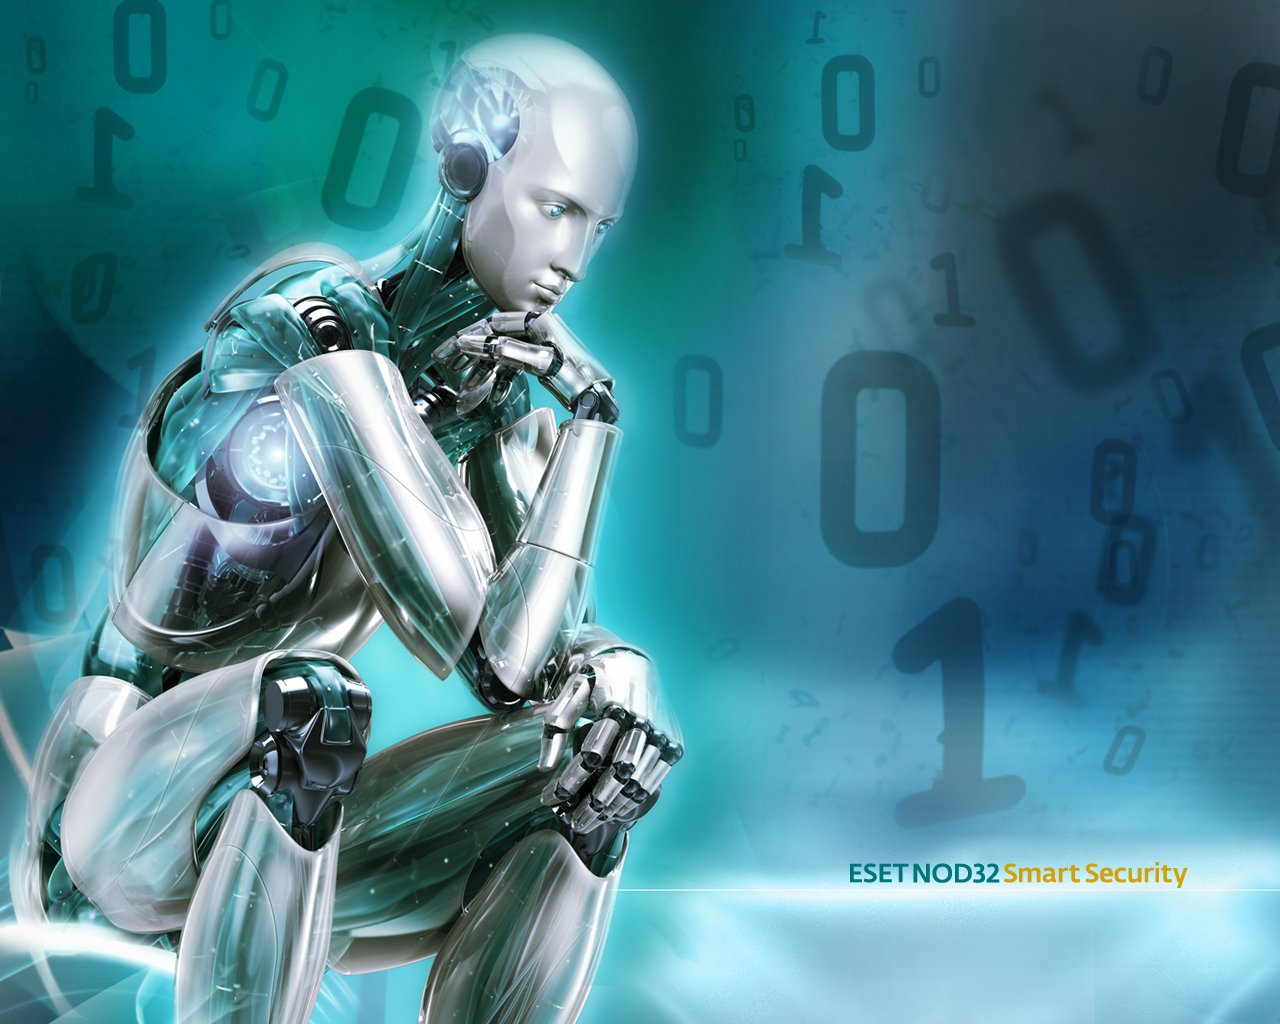 Mobile Security Eset